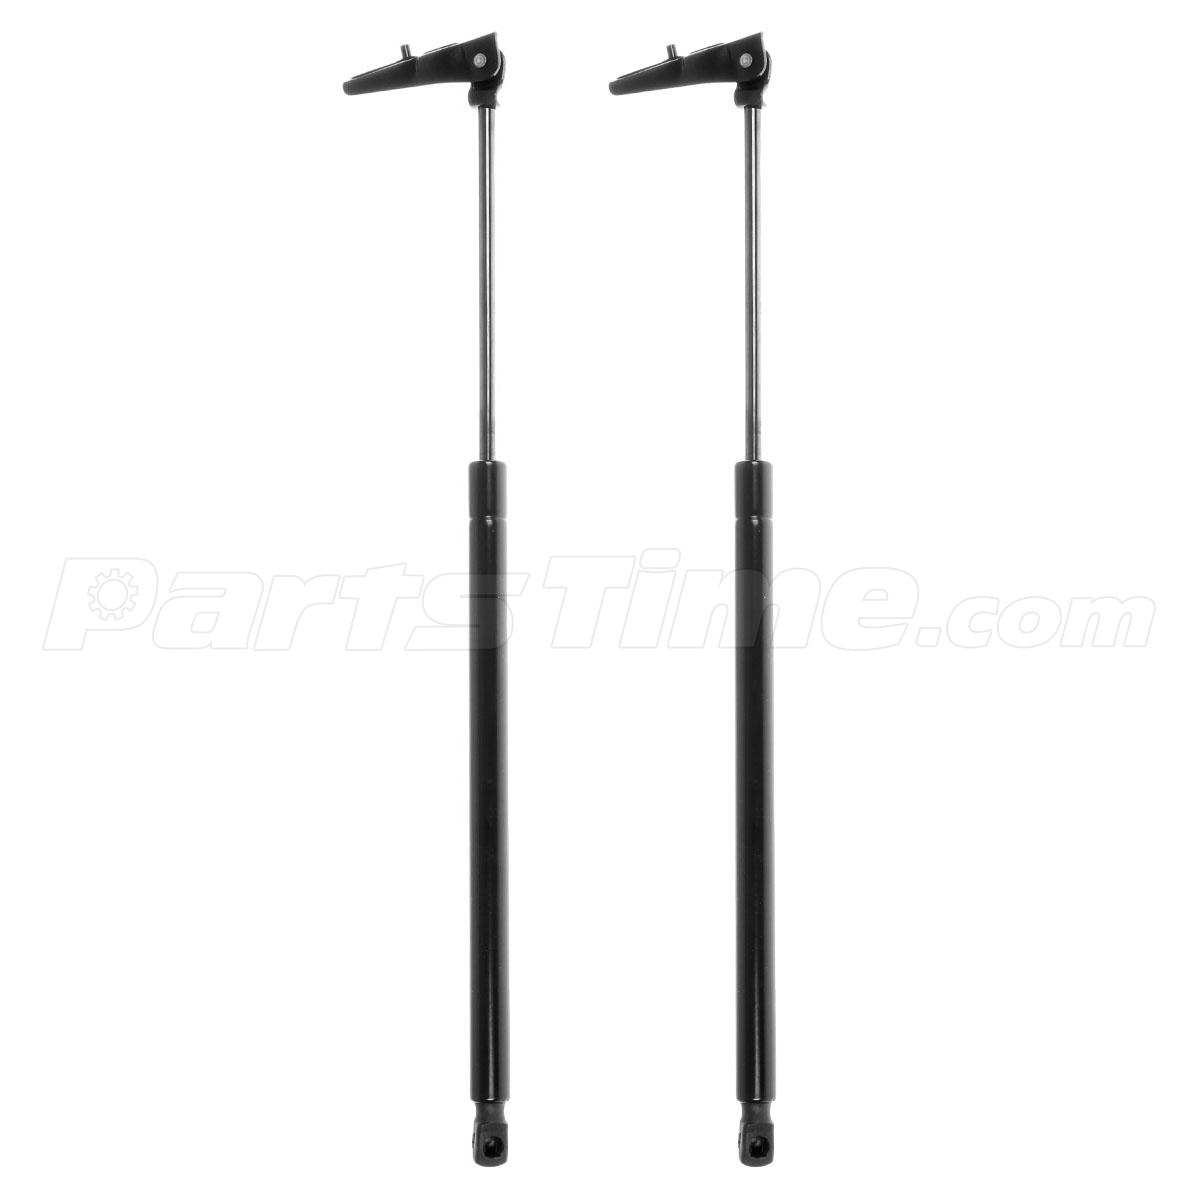 Toyota Celica 1995 1999 Shock Absorbers And Struts: 1Pair Rear Hatch Lift Supports Shocks Struts Fits 1994